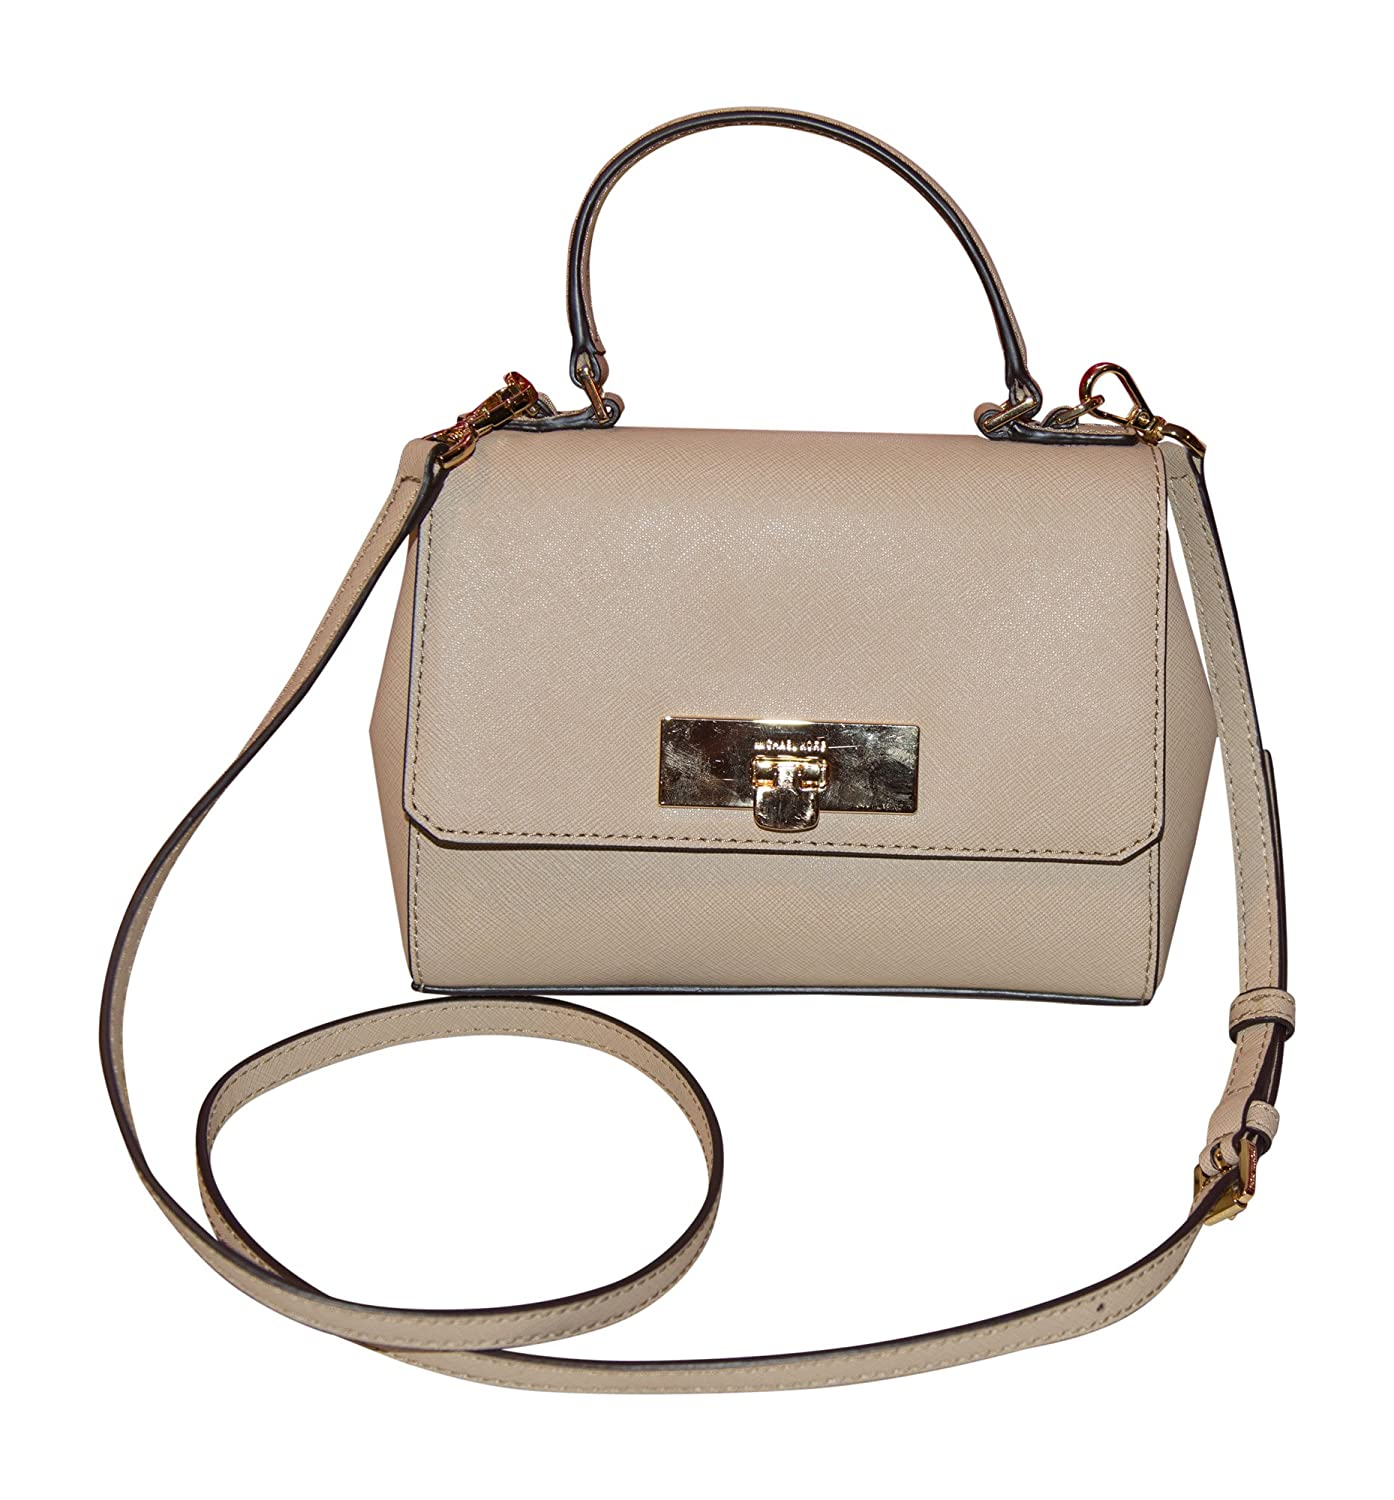 9440a5b29bd5 Michael Kors Callie X-Small Leather Crossbody Handbag, Bisque: Handbags:  Amazon.com